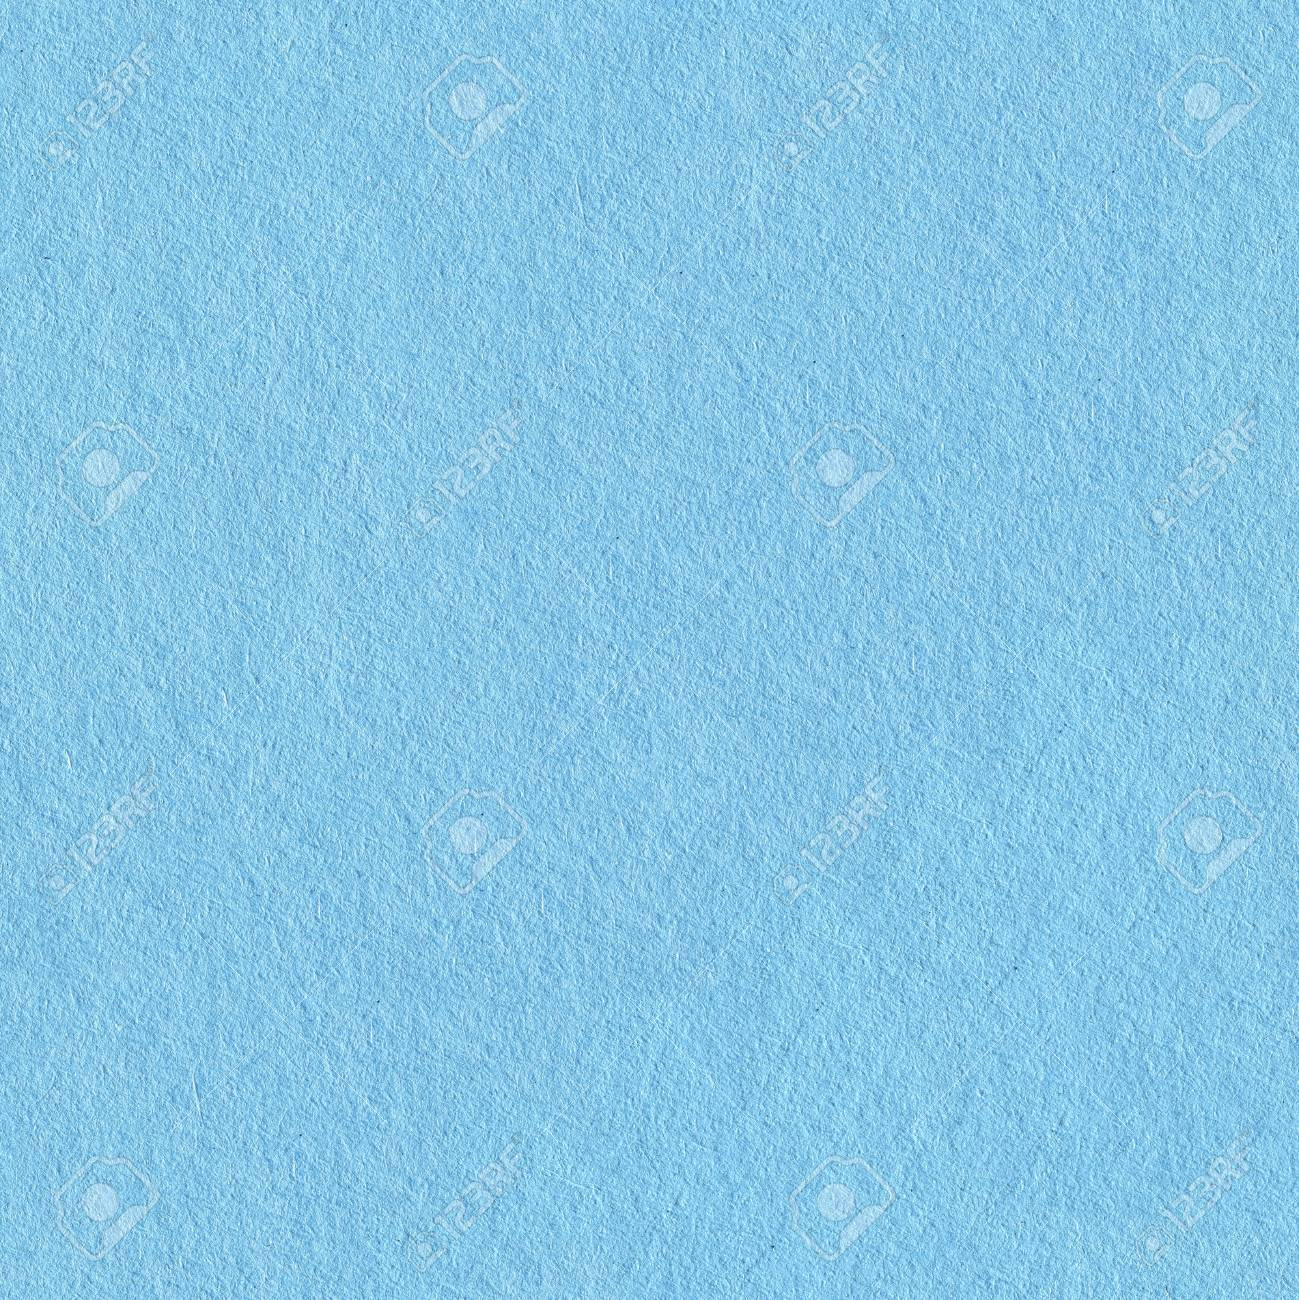 Seamless square texture  Light blue paper texture blank background